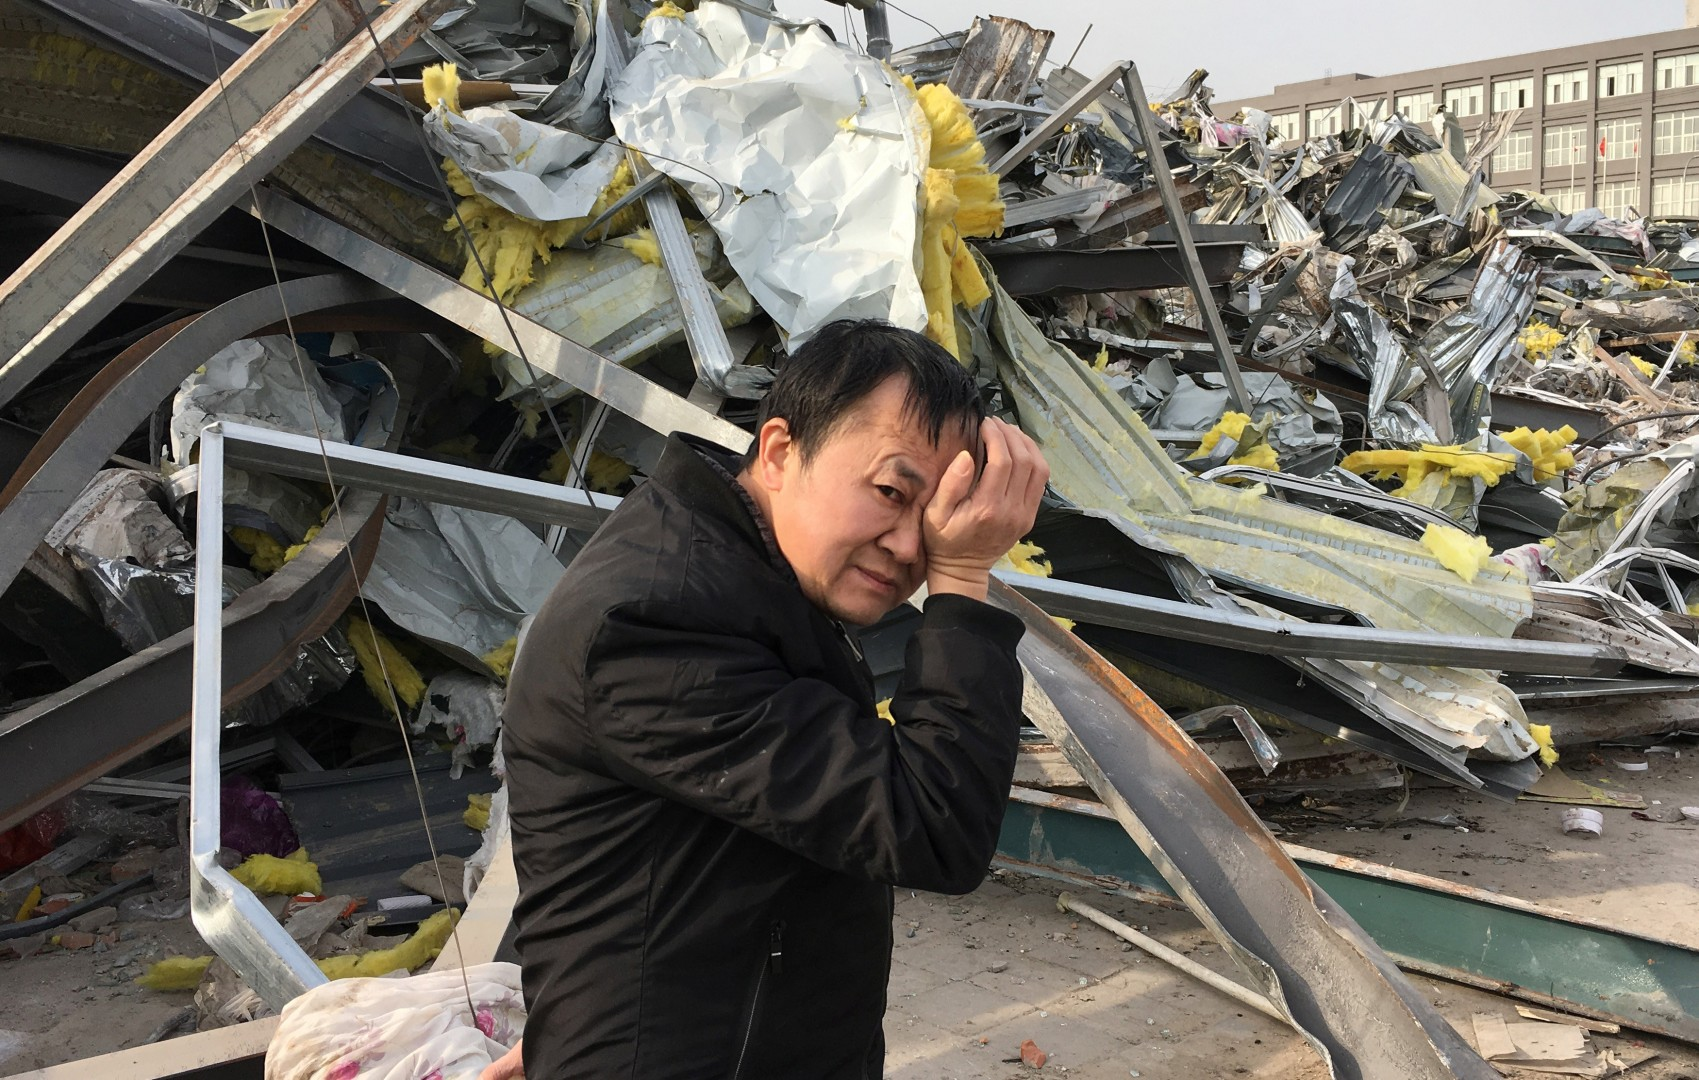 China, Beijing, Daxing, Xinjian Cun, where the government has destroyed the neighborhood of migrant workers and evicted everyone. I feel really sorry for this guy, who is obviously upset. Note the building in the background. Reuters